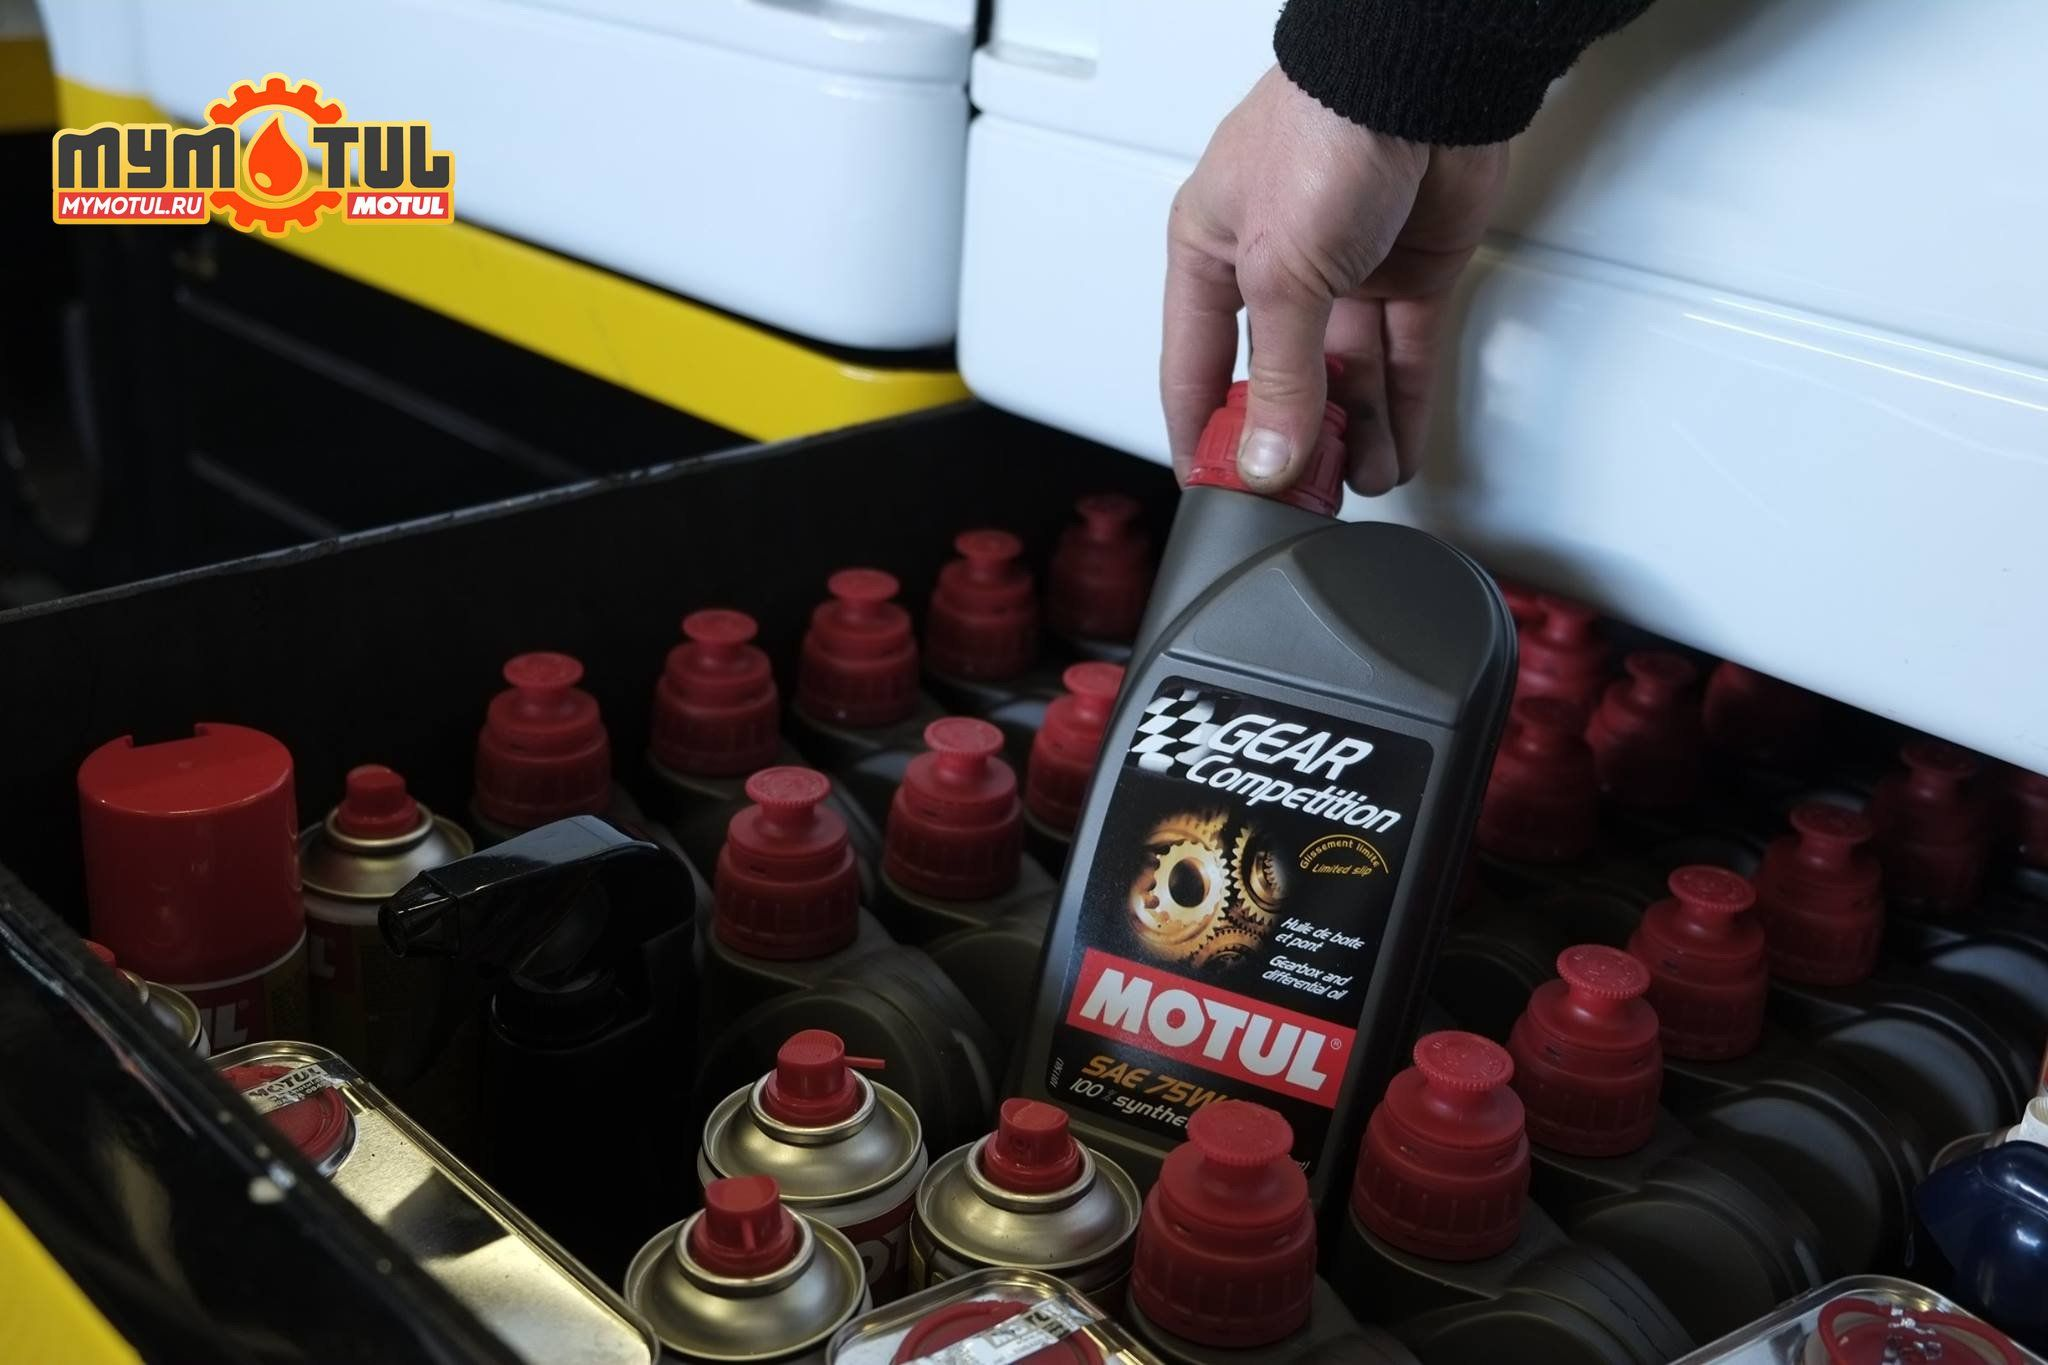 Motul Gear Competiition 75W140